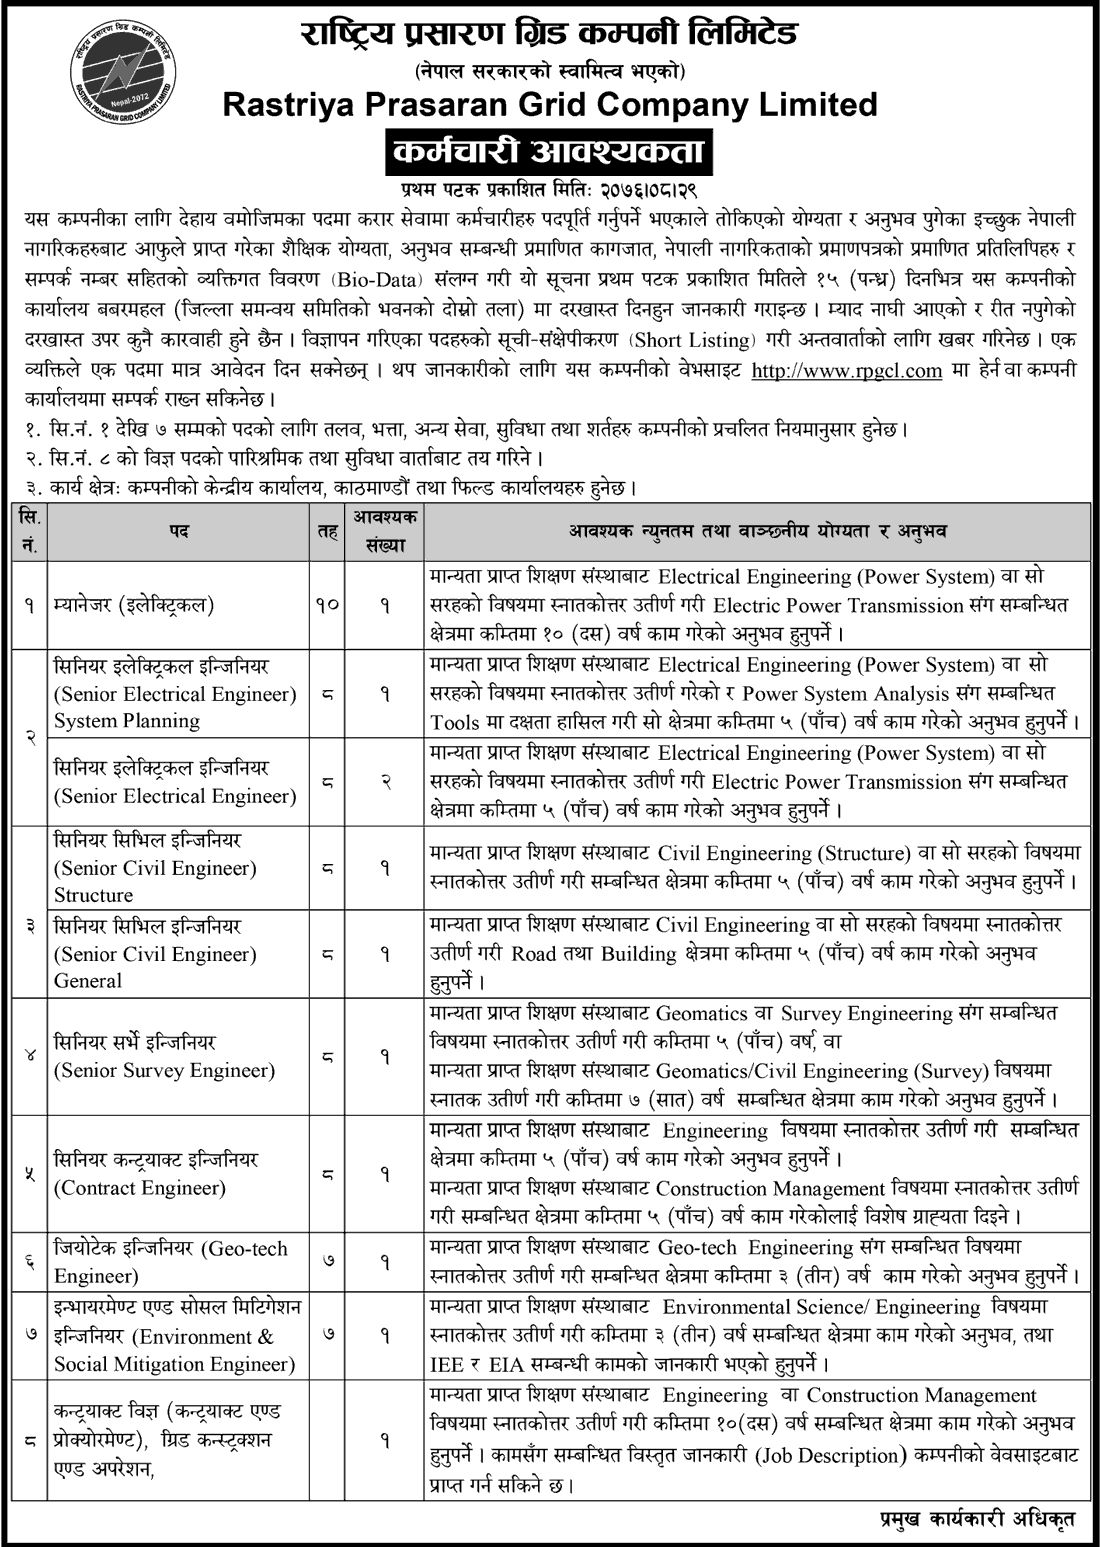 Rastriya Prasharan Grid Company Vacancy Notice